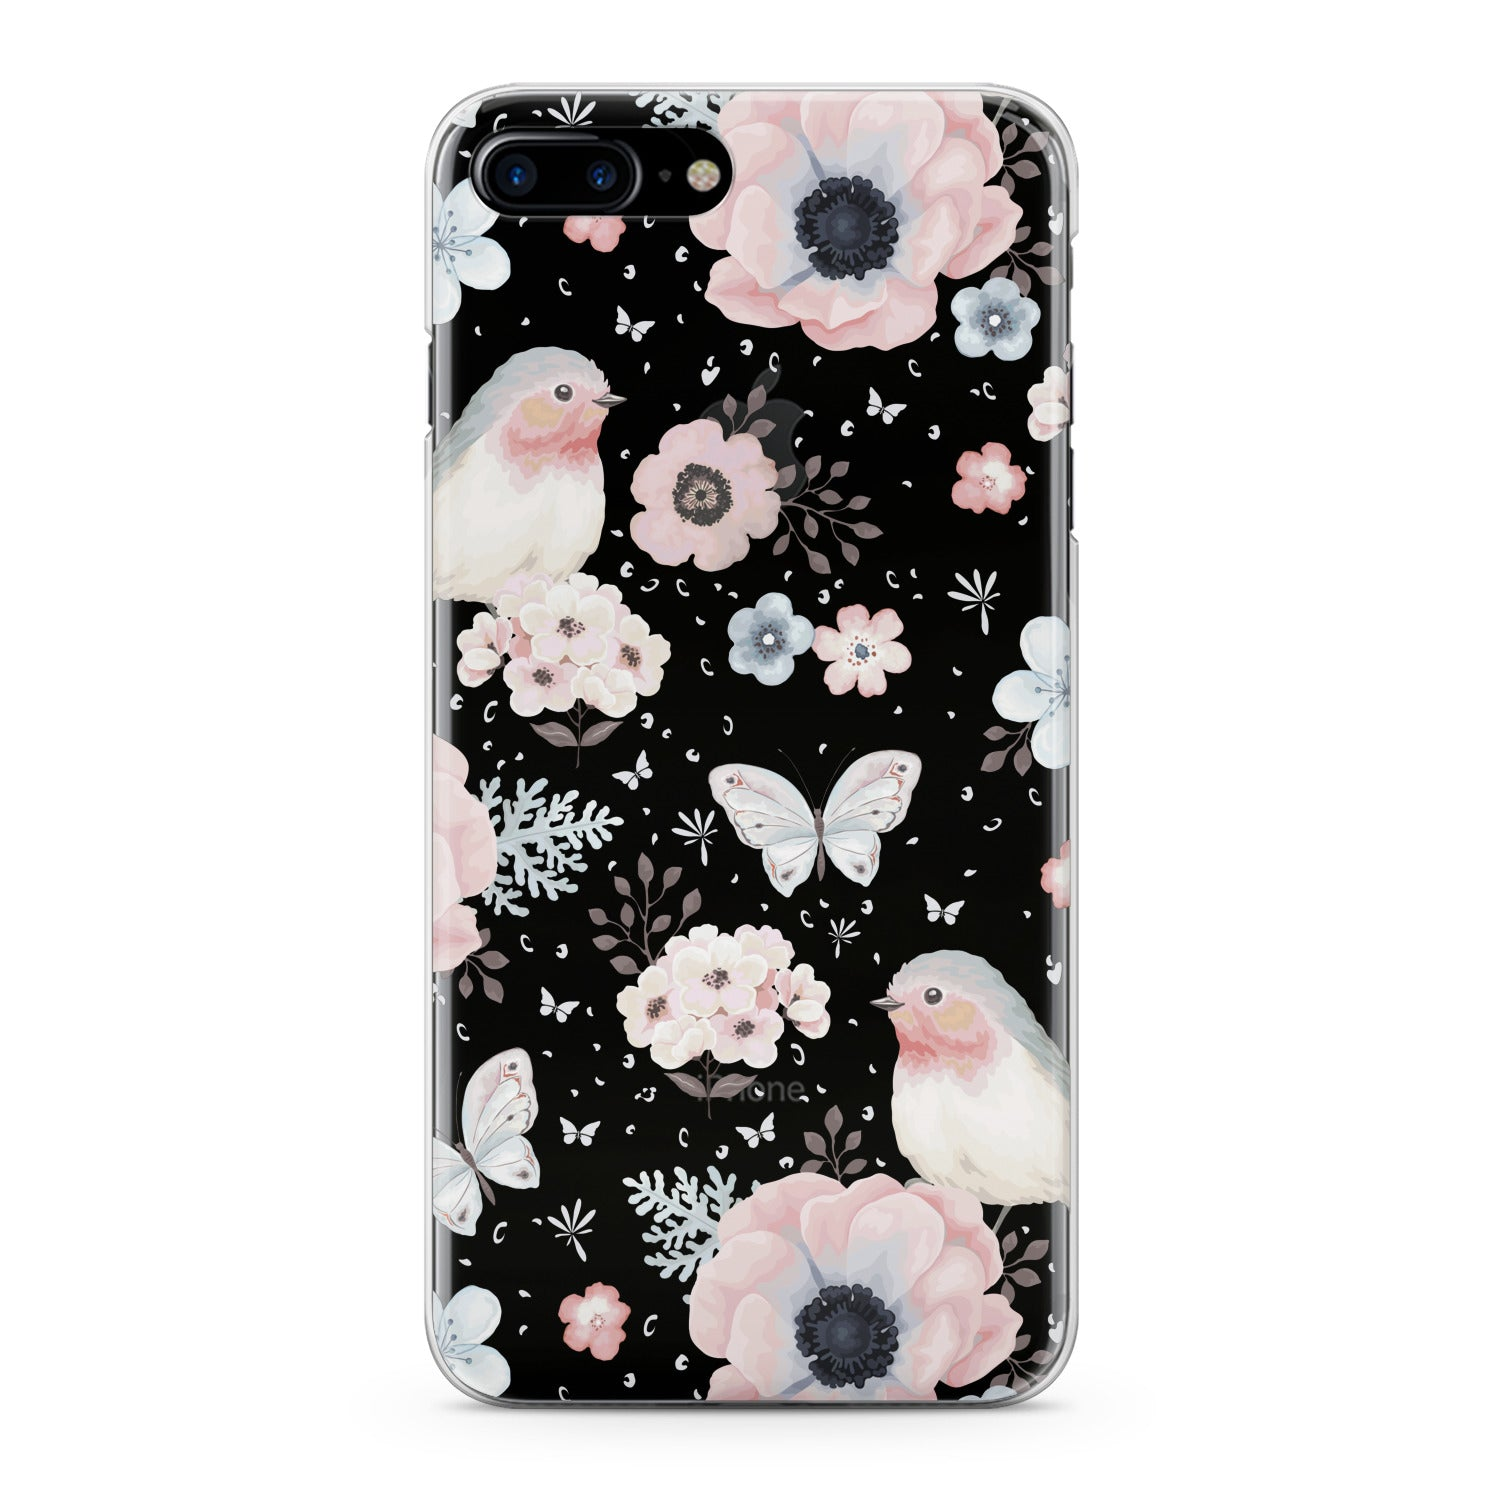 Lex Altern Pink Spring Phone Case for your iPhone & Android phone.